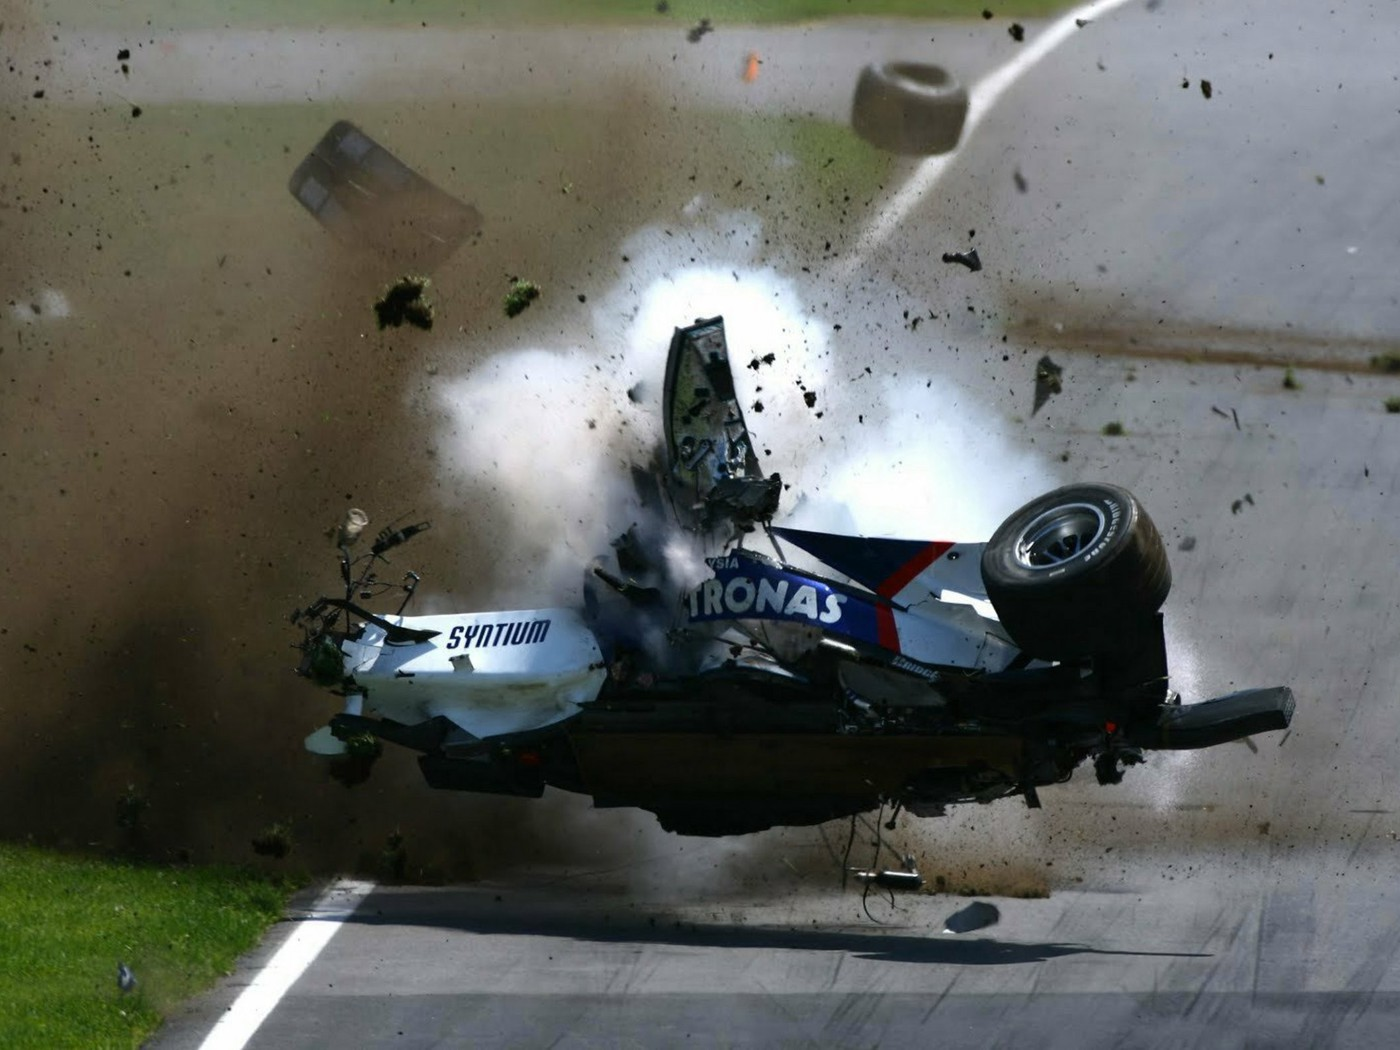 download formula 1 crashes - photo #4